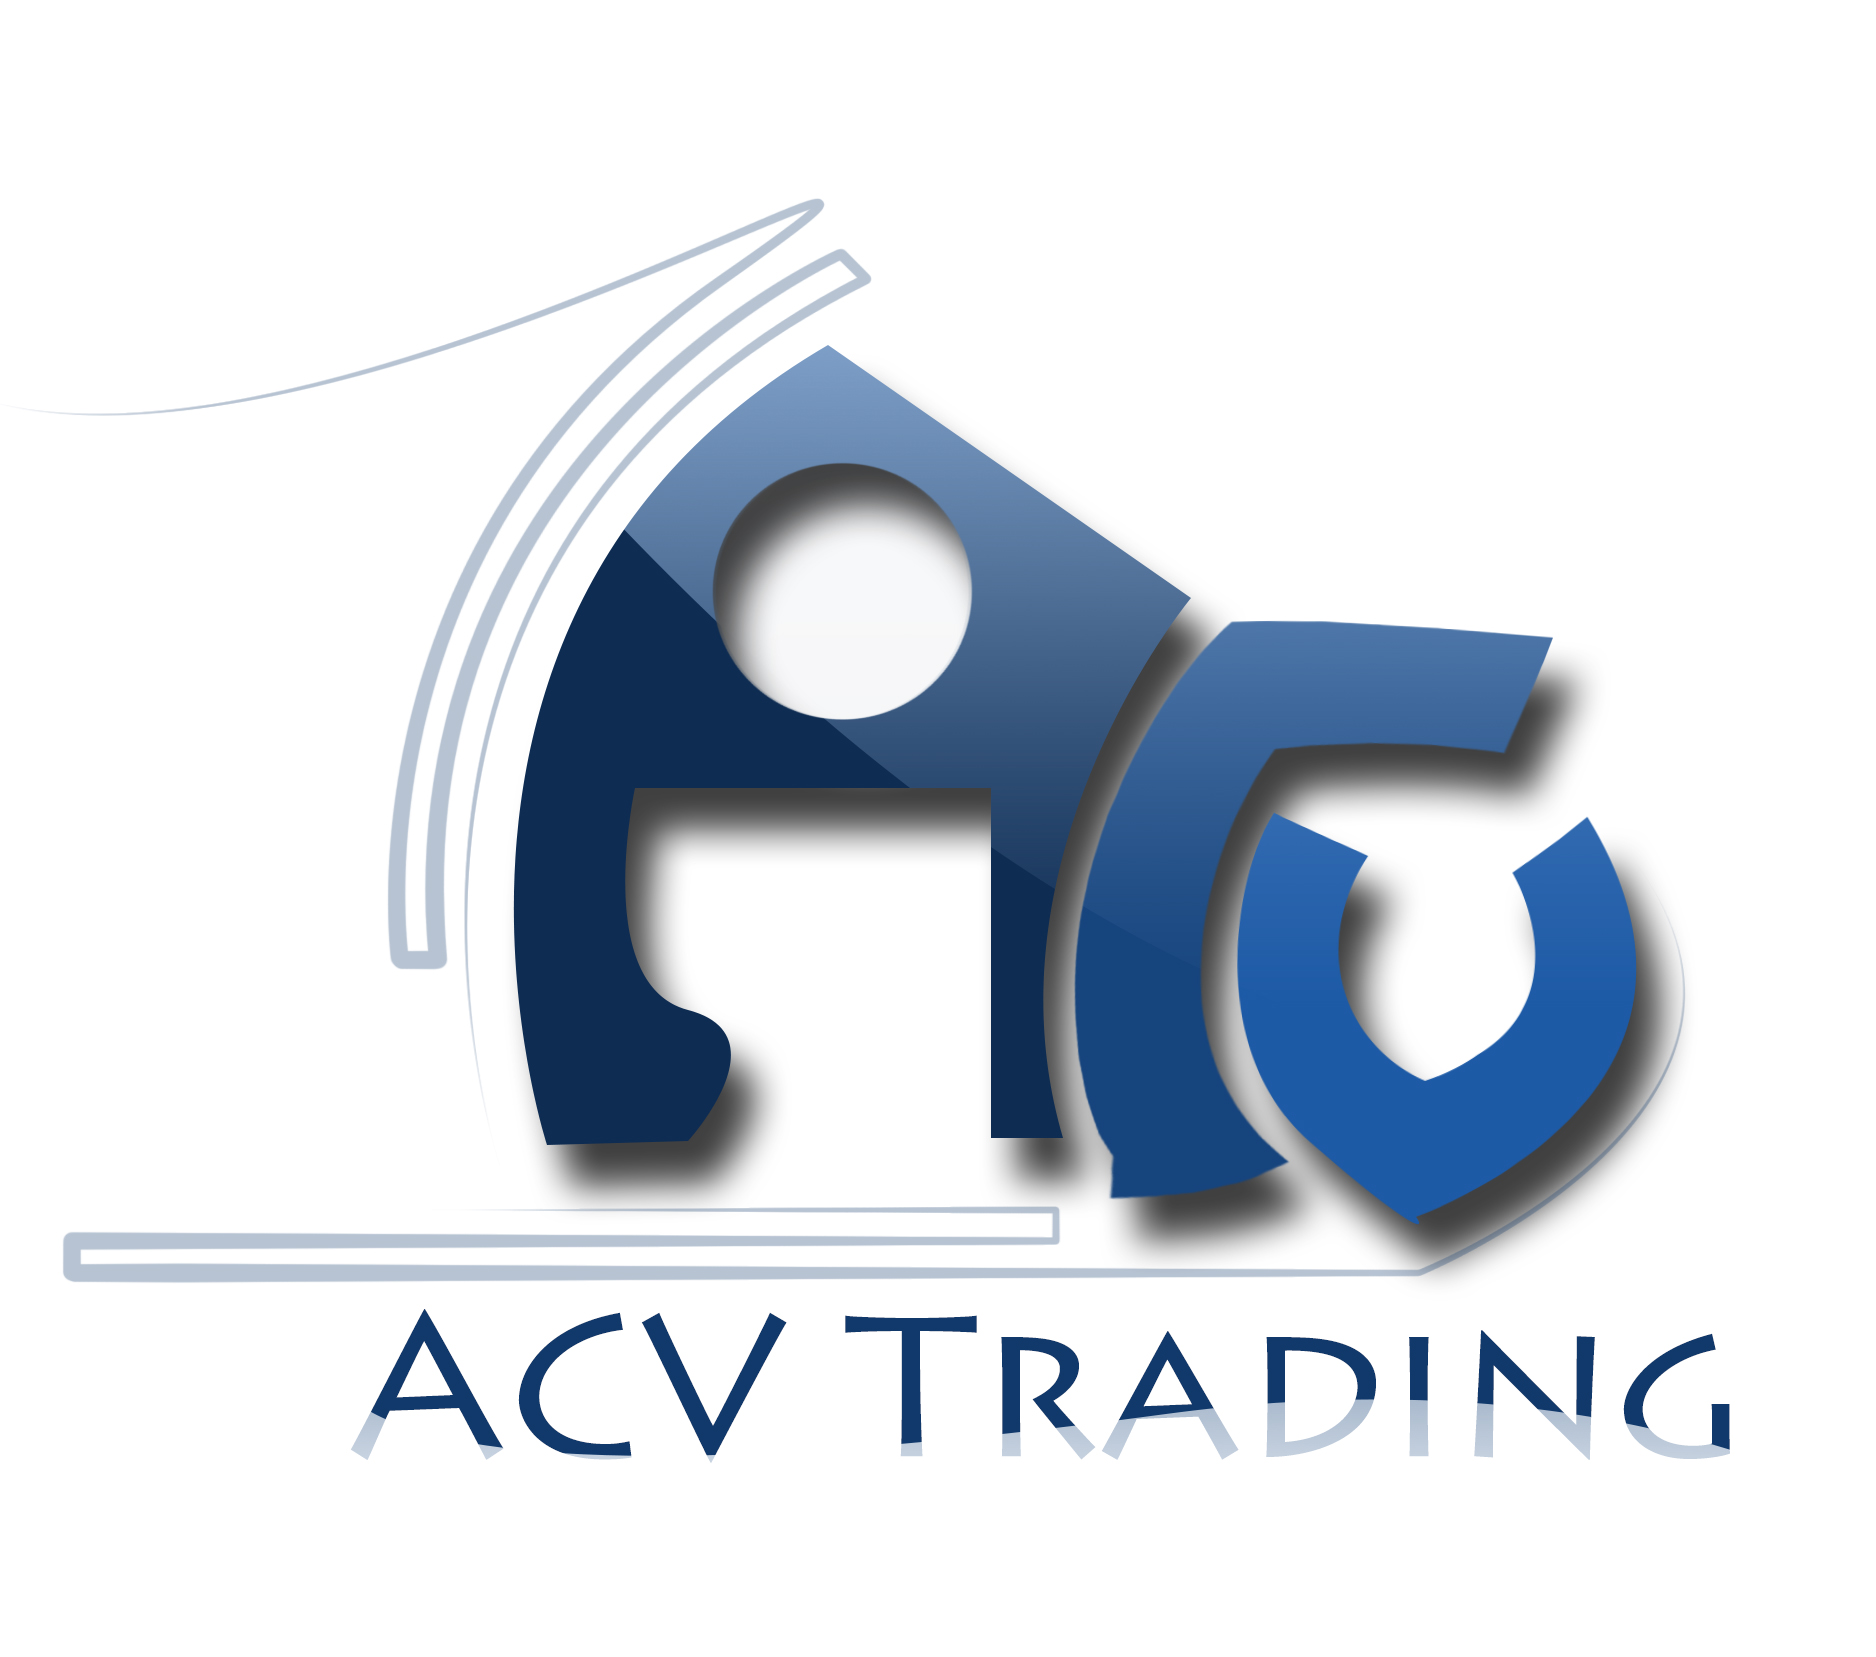 Logo Design by Satyaki Mandal - Entry No. 42 in the Logo Design Contest Fun Logo Design for ACV Trading.